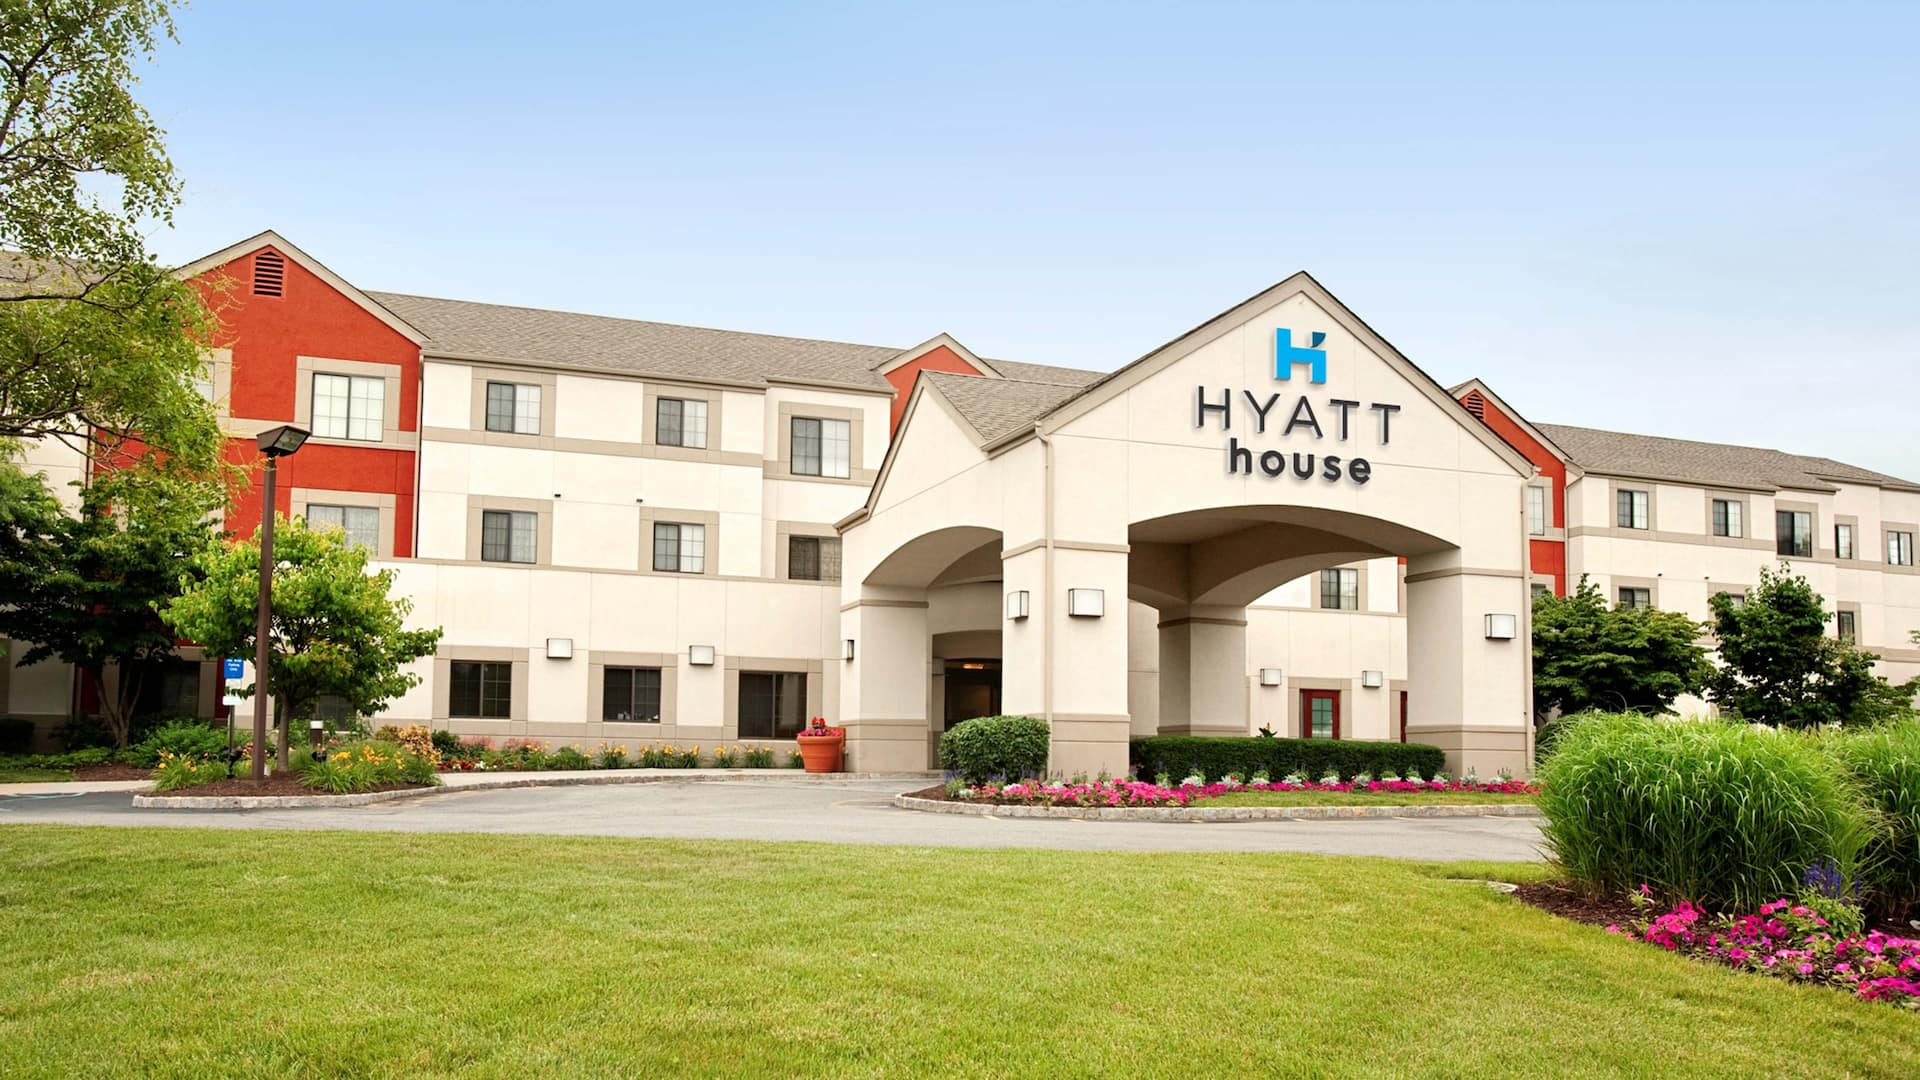 Hyatt House morristown Exterior